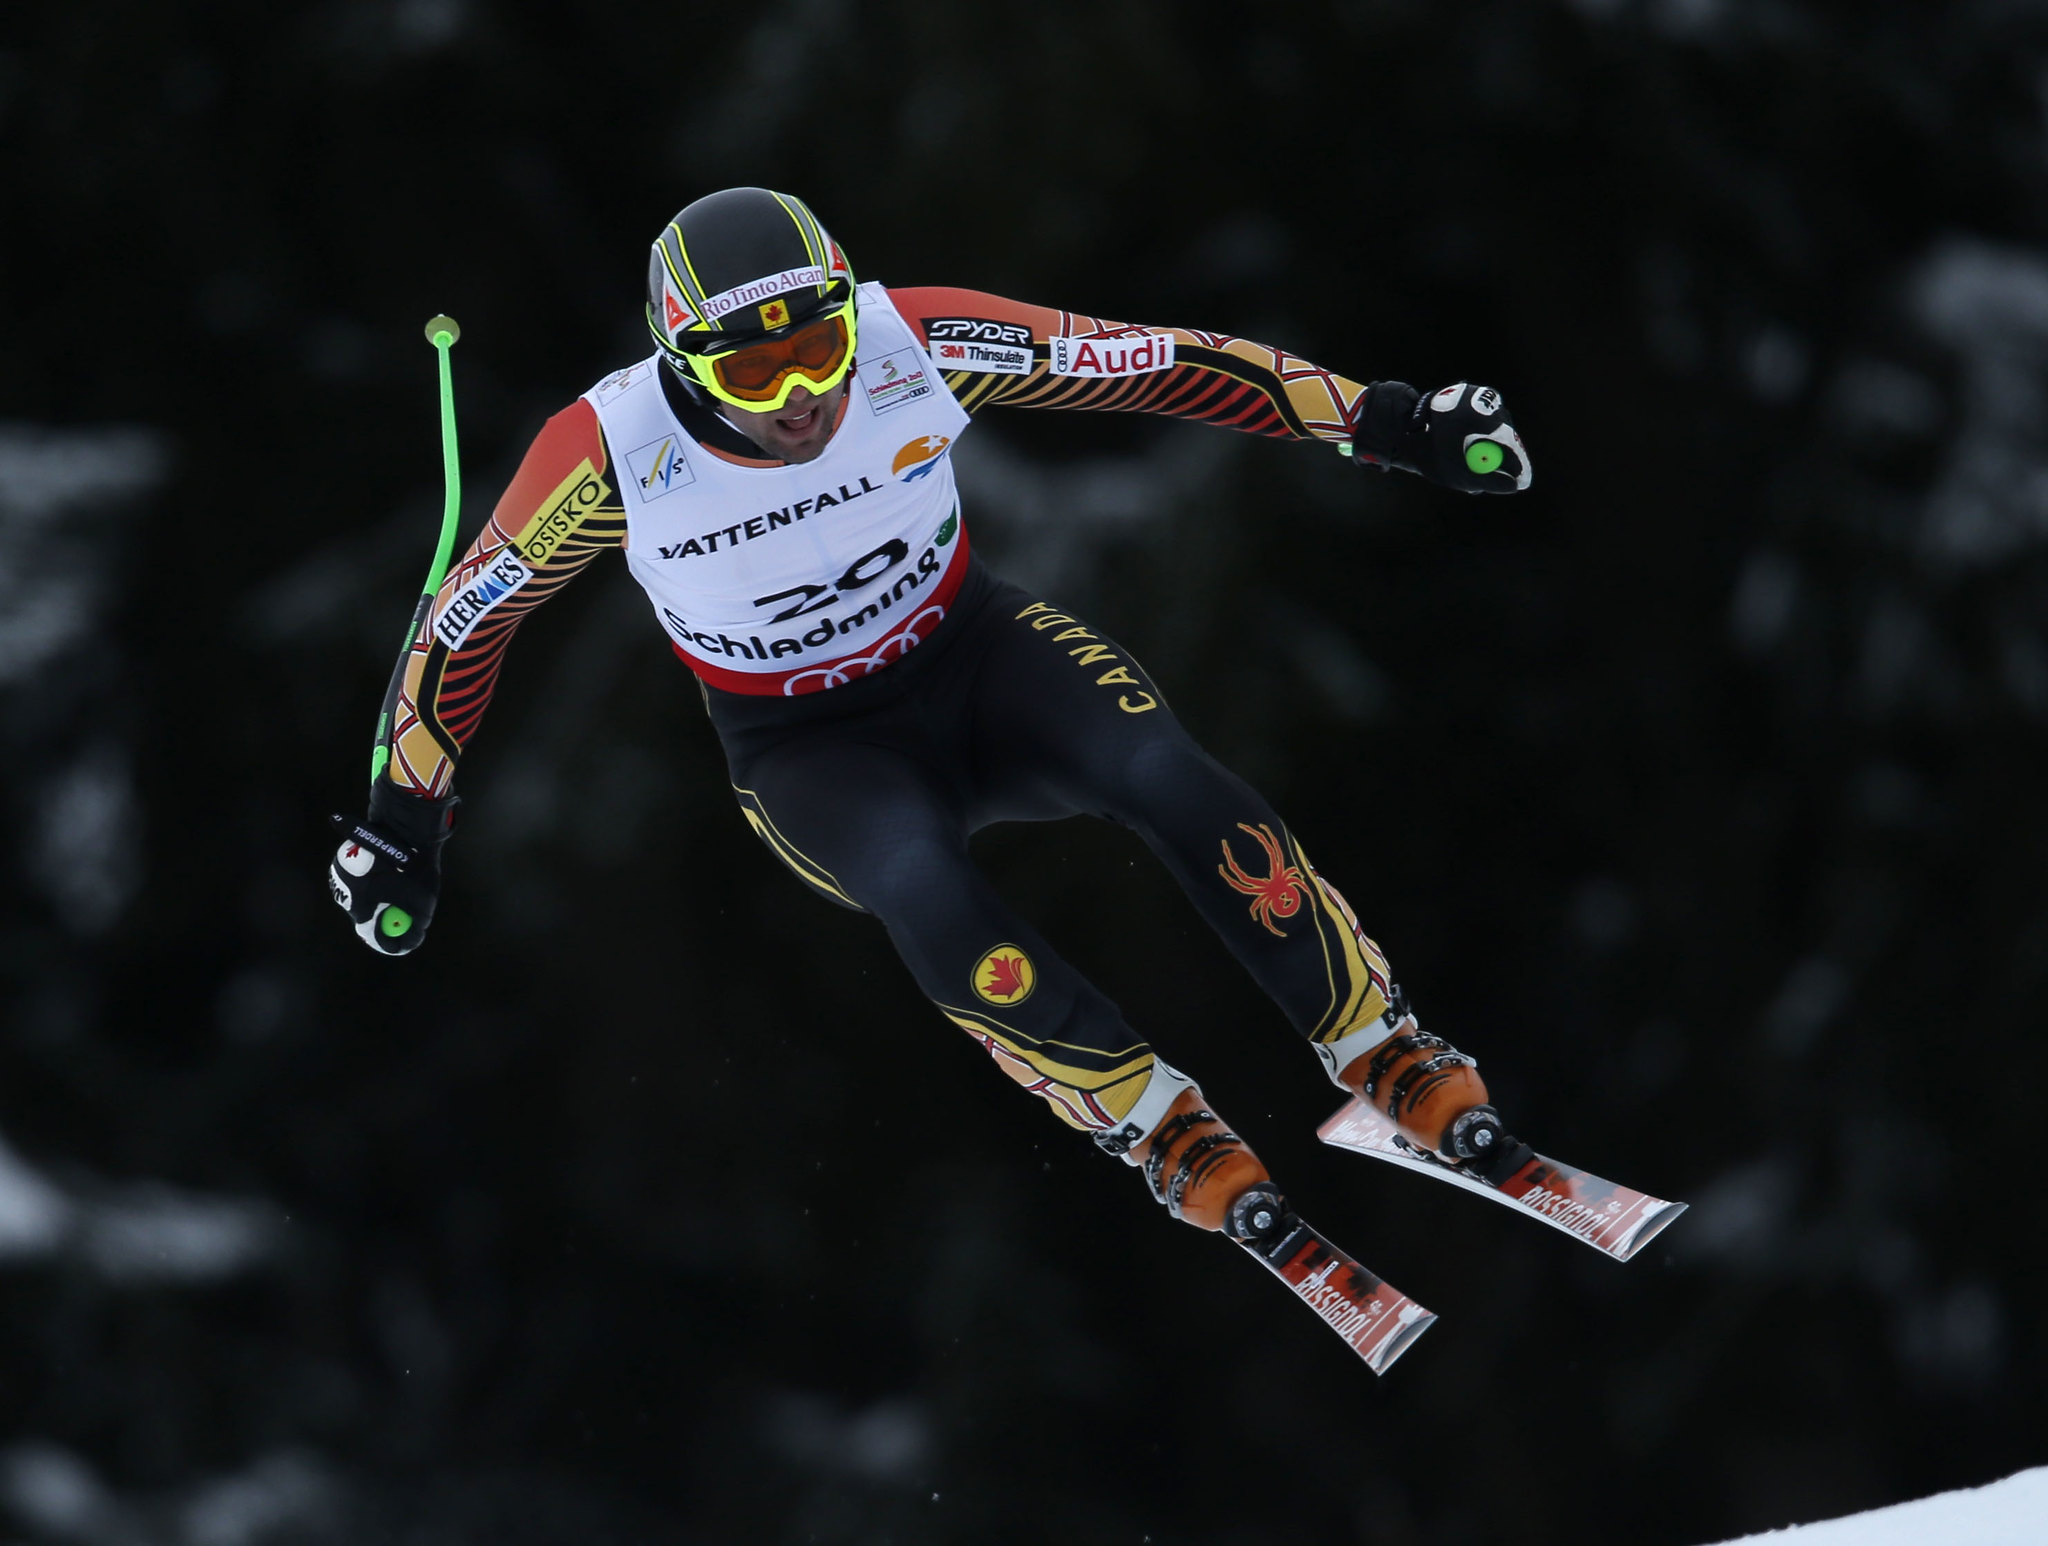 Manuel Osborne-Paradis continues the road to comeback with a 16th-place finish at the world championships in men's super-G in Schladming, Austria.